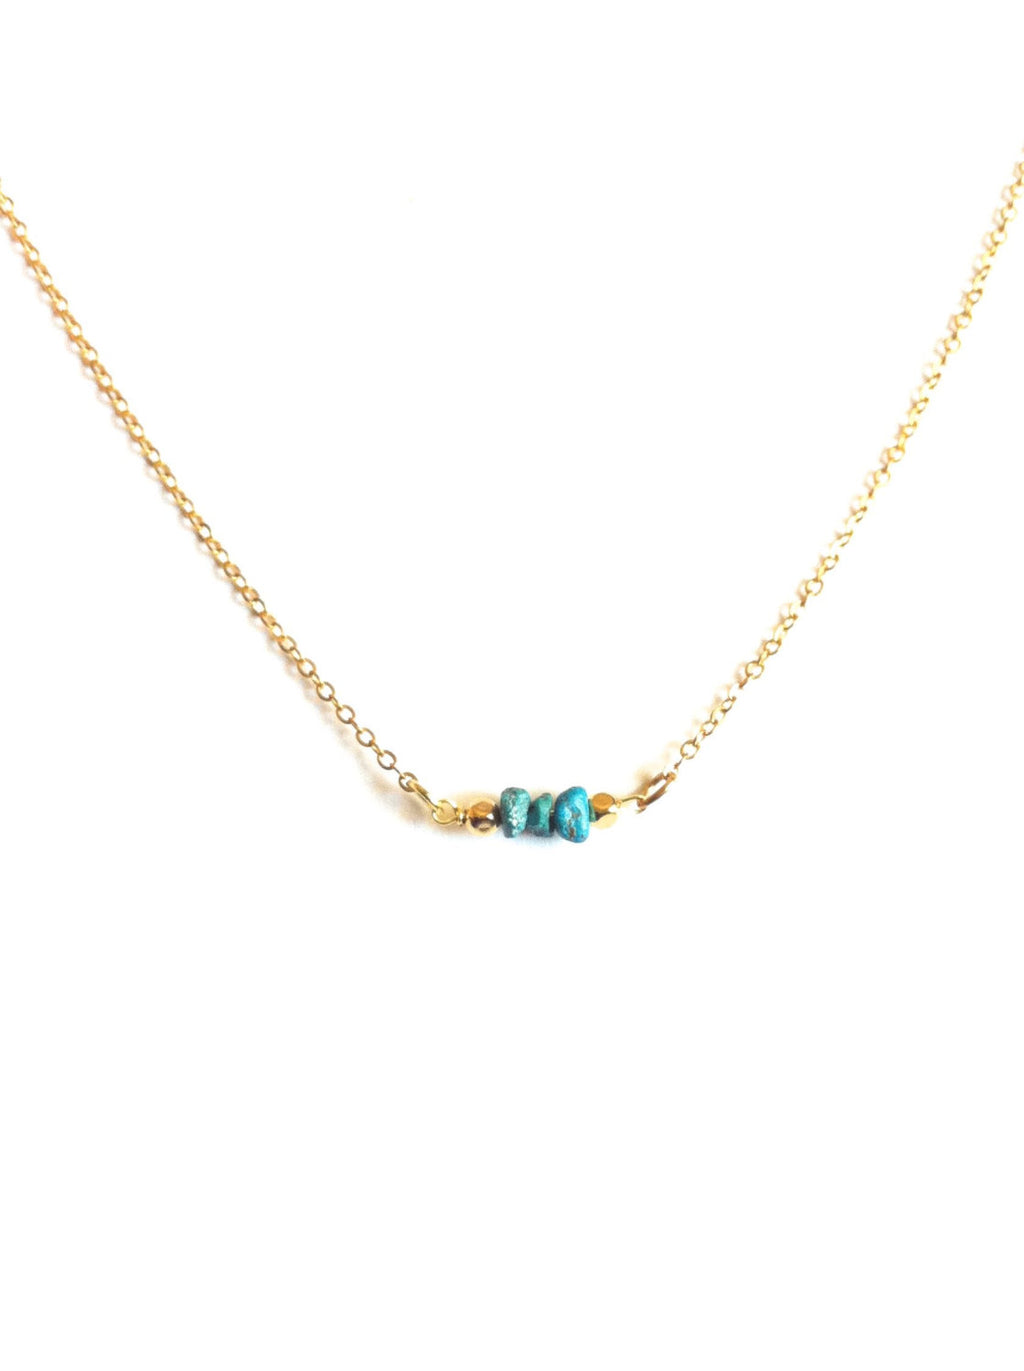 Tiny Turquoise Bead Short Bar Necklace | IB Jewelry